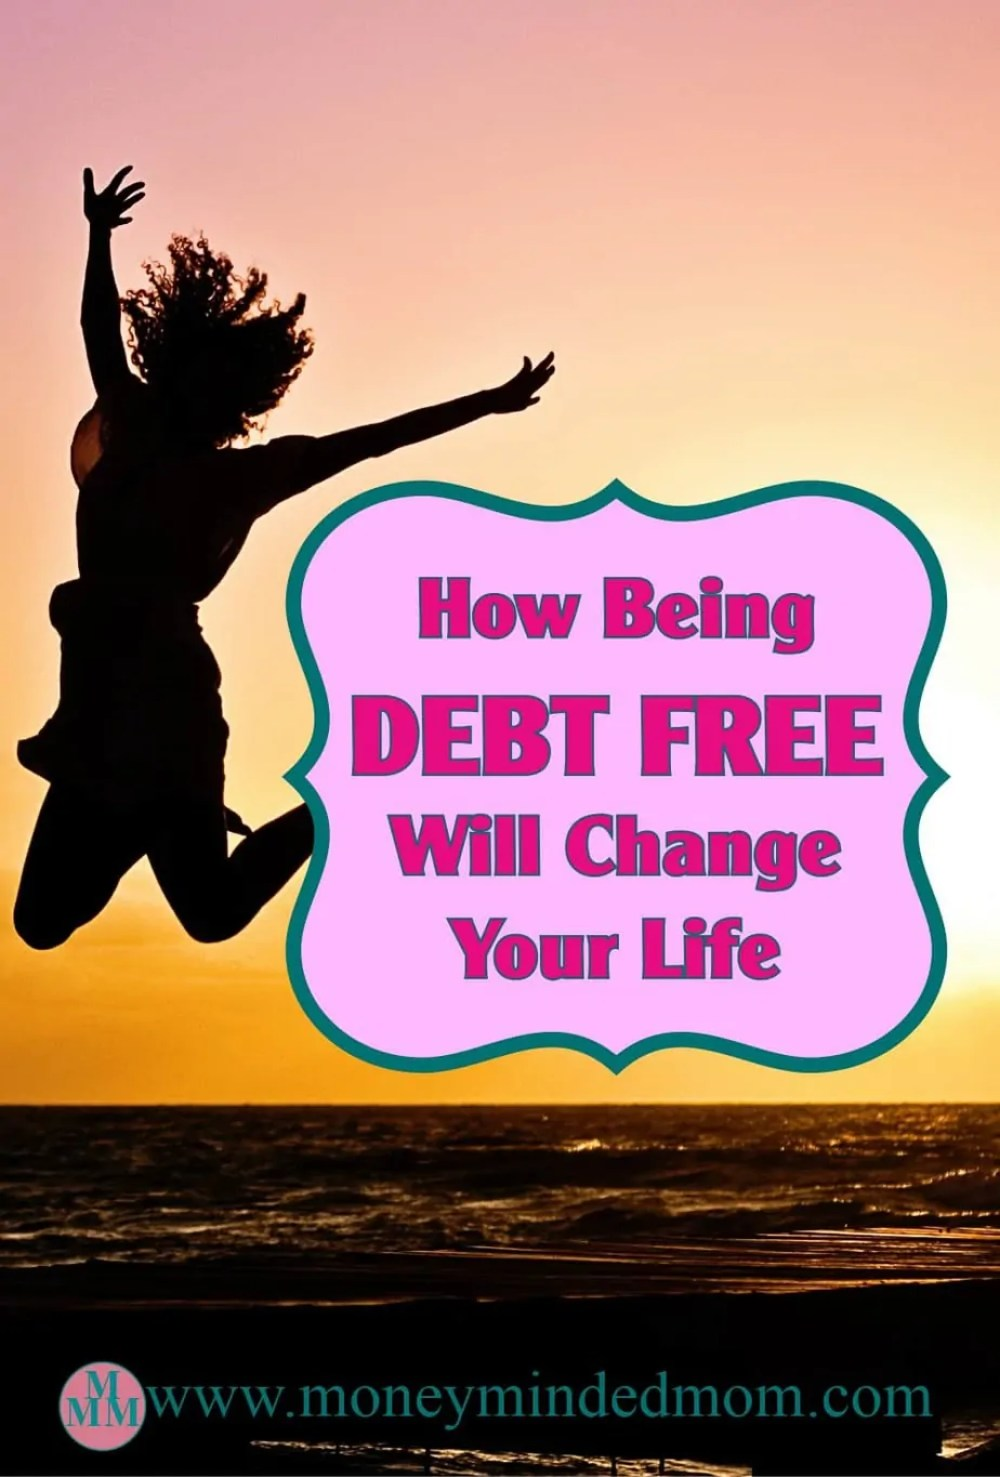 How Being Debt Free Will Change Your Life